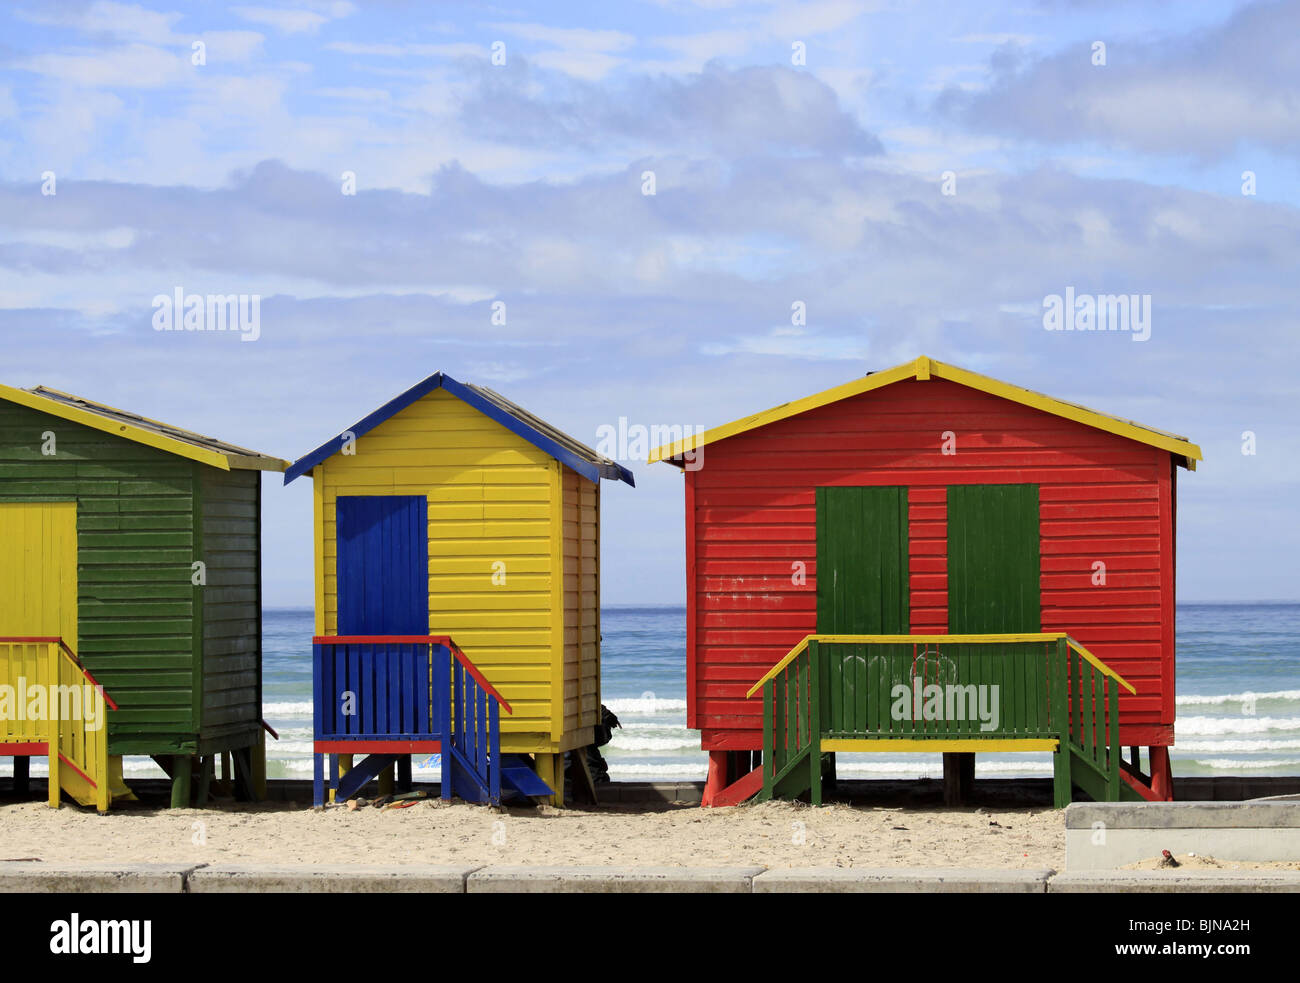 Colourful beach huts on Muizenberg beach, False Bay, South Africa. - Stock Image